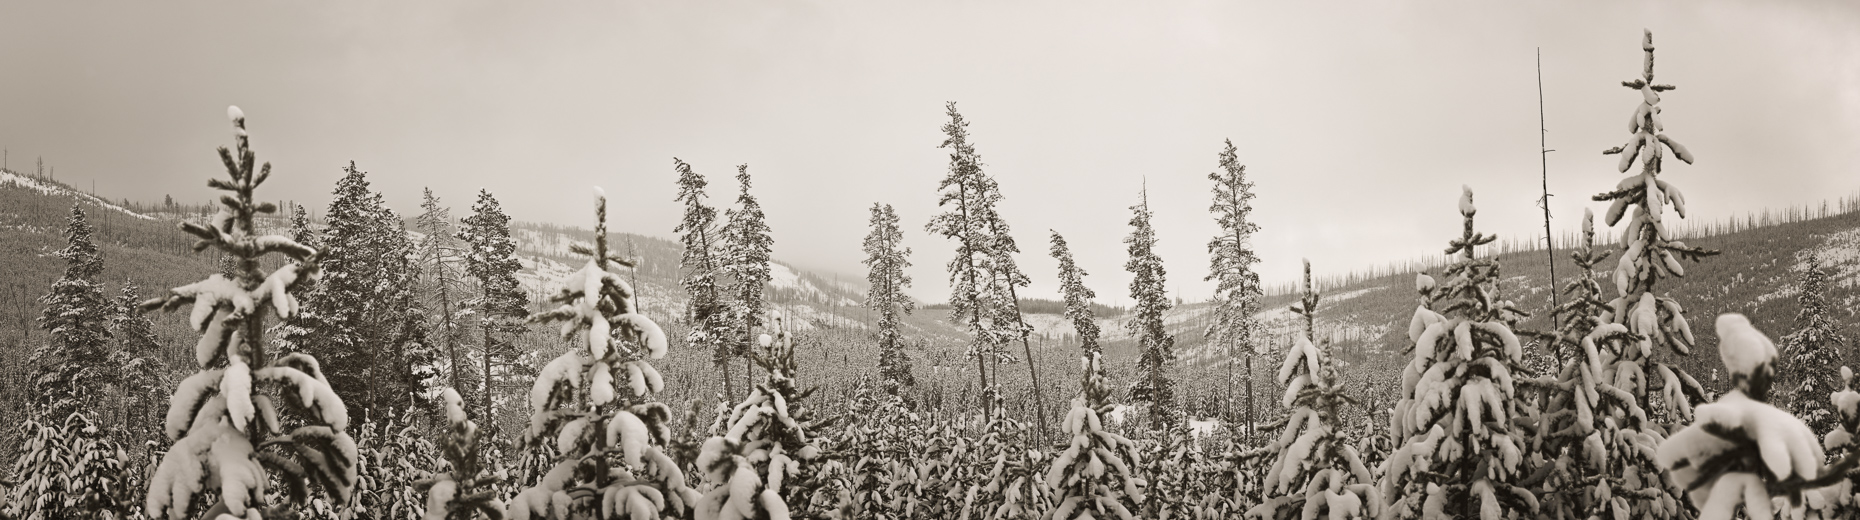 [Group 2]-2012.3.18-20-Teton_0752_2012.3.18-20-Teton_0805-54 images_a